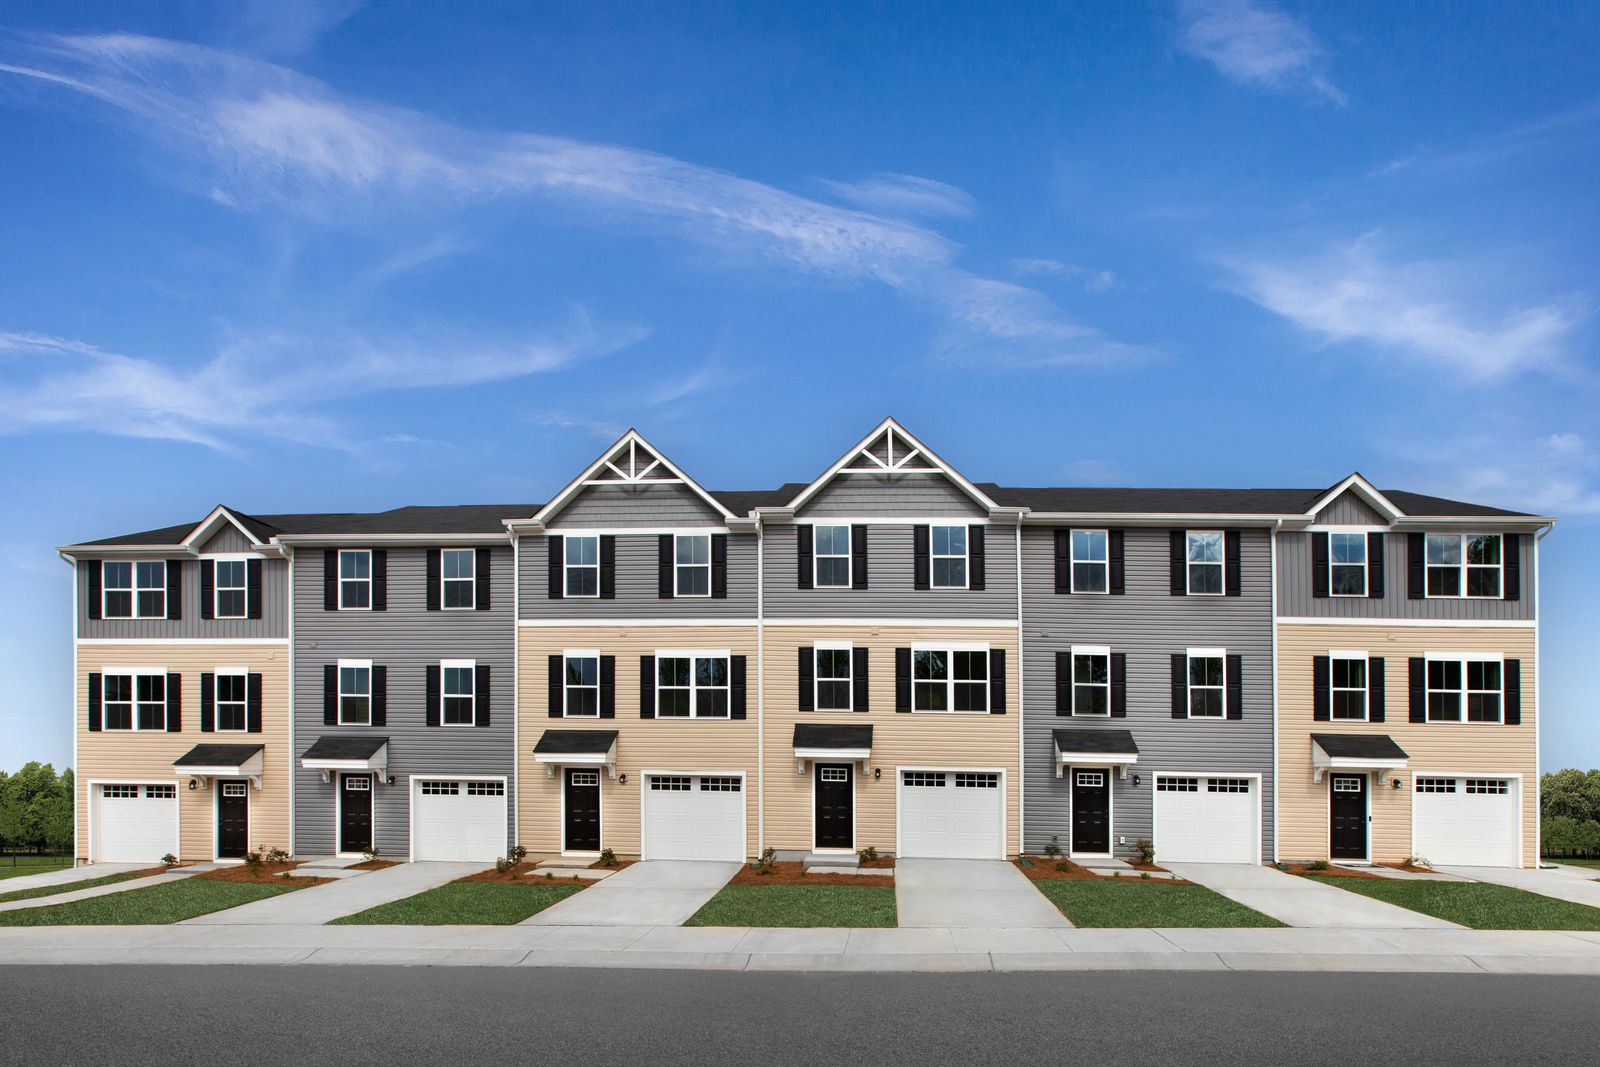 Why rent when you can own for the same or less?:Own a low maintenance new home in the heart of Easley with a 1 car garage.Schedule a visittoday!